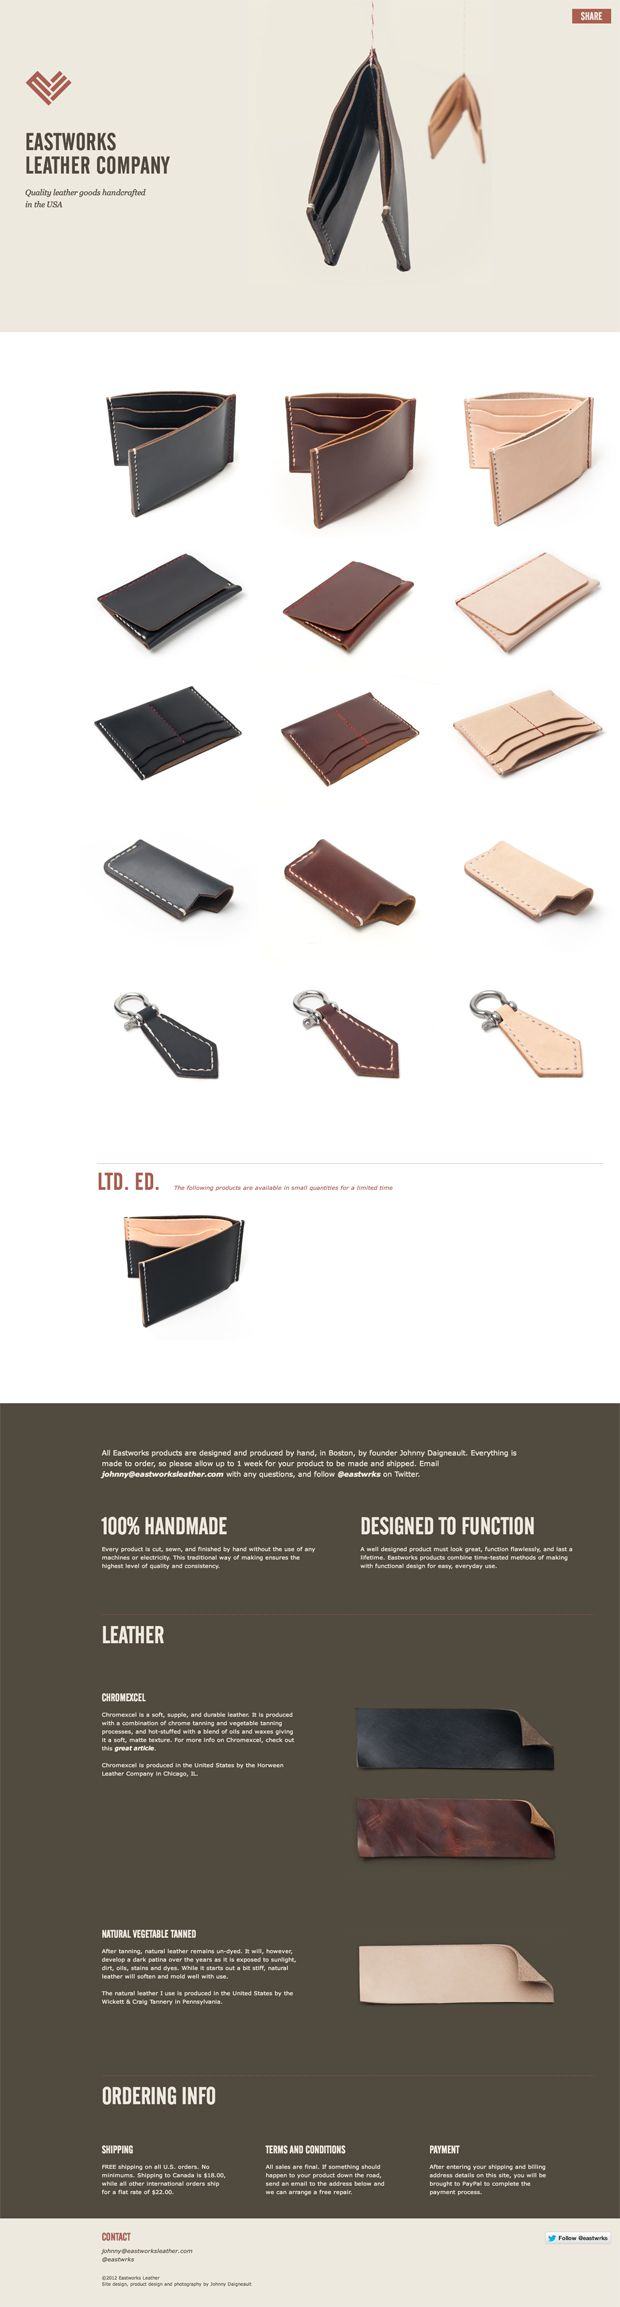 Best Product Sites » Eastworks Leather